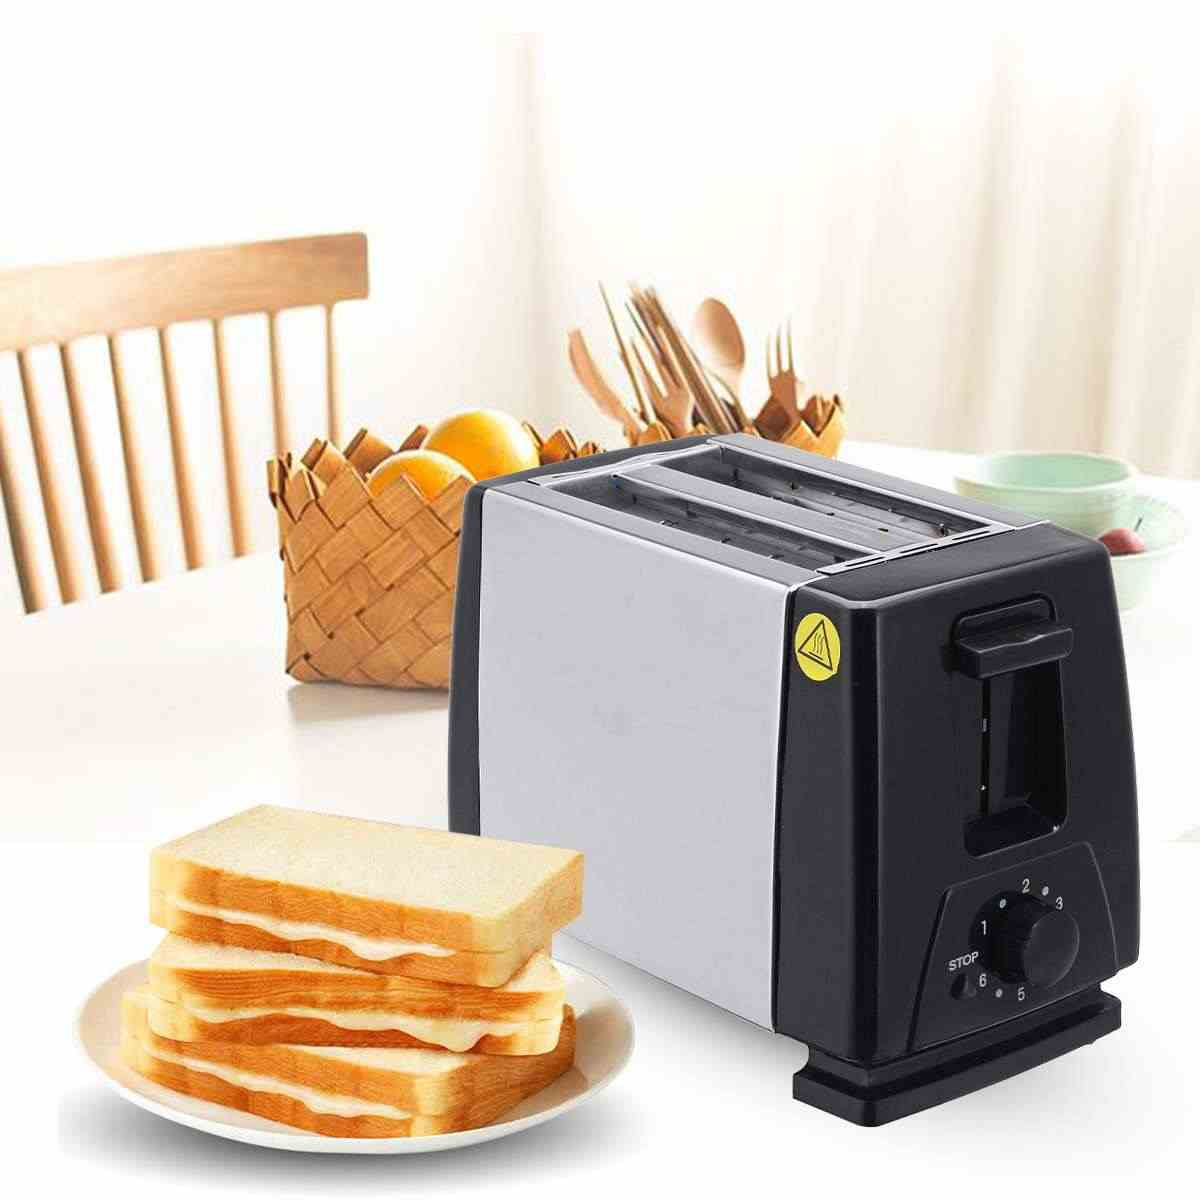 110V/220V Electric Toaster Household 6 Gears Automatic Bread Baking Maker Breakfast Machine Toast Sandwich Grill Oven 2-Slice